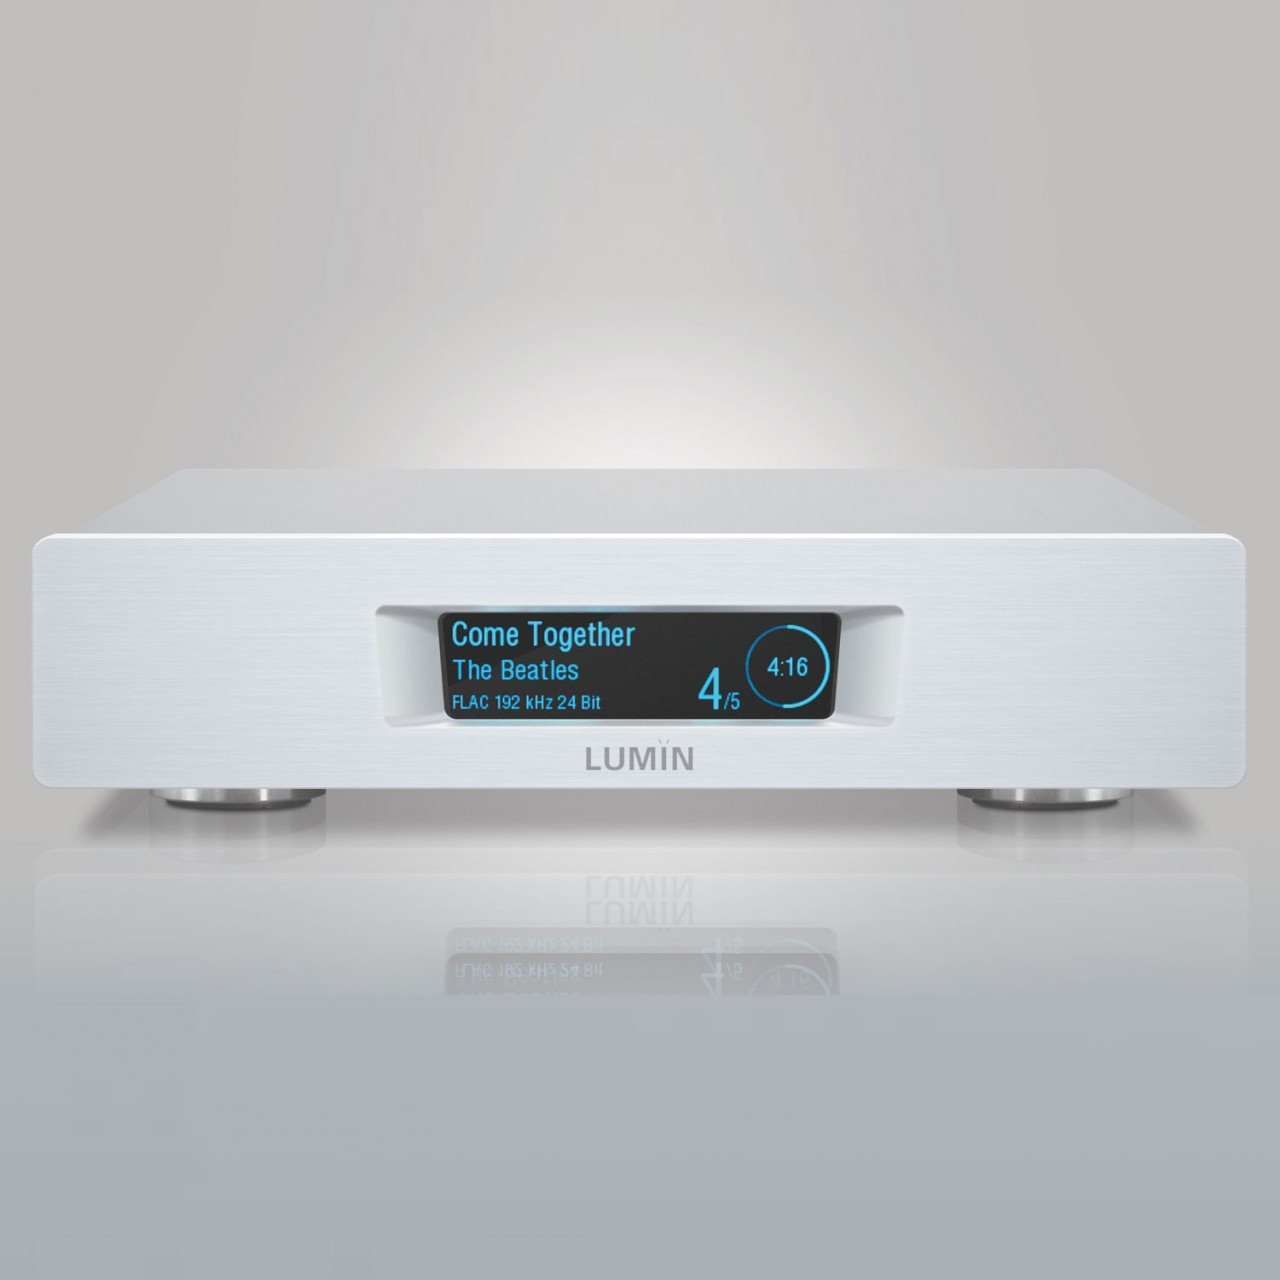 Lumin D2 network music streamer